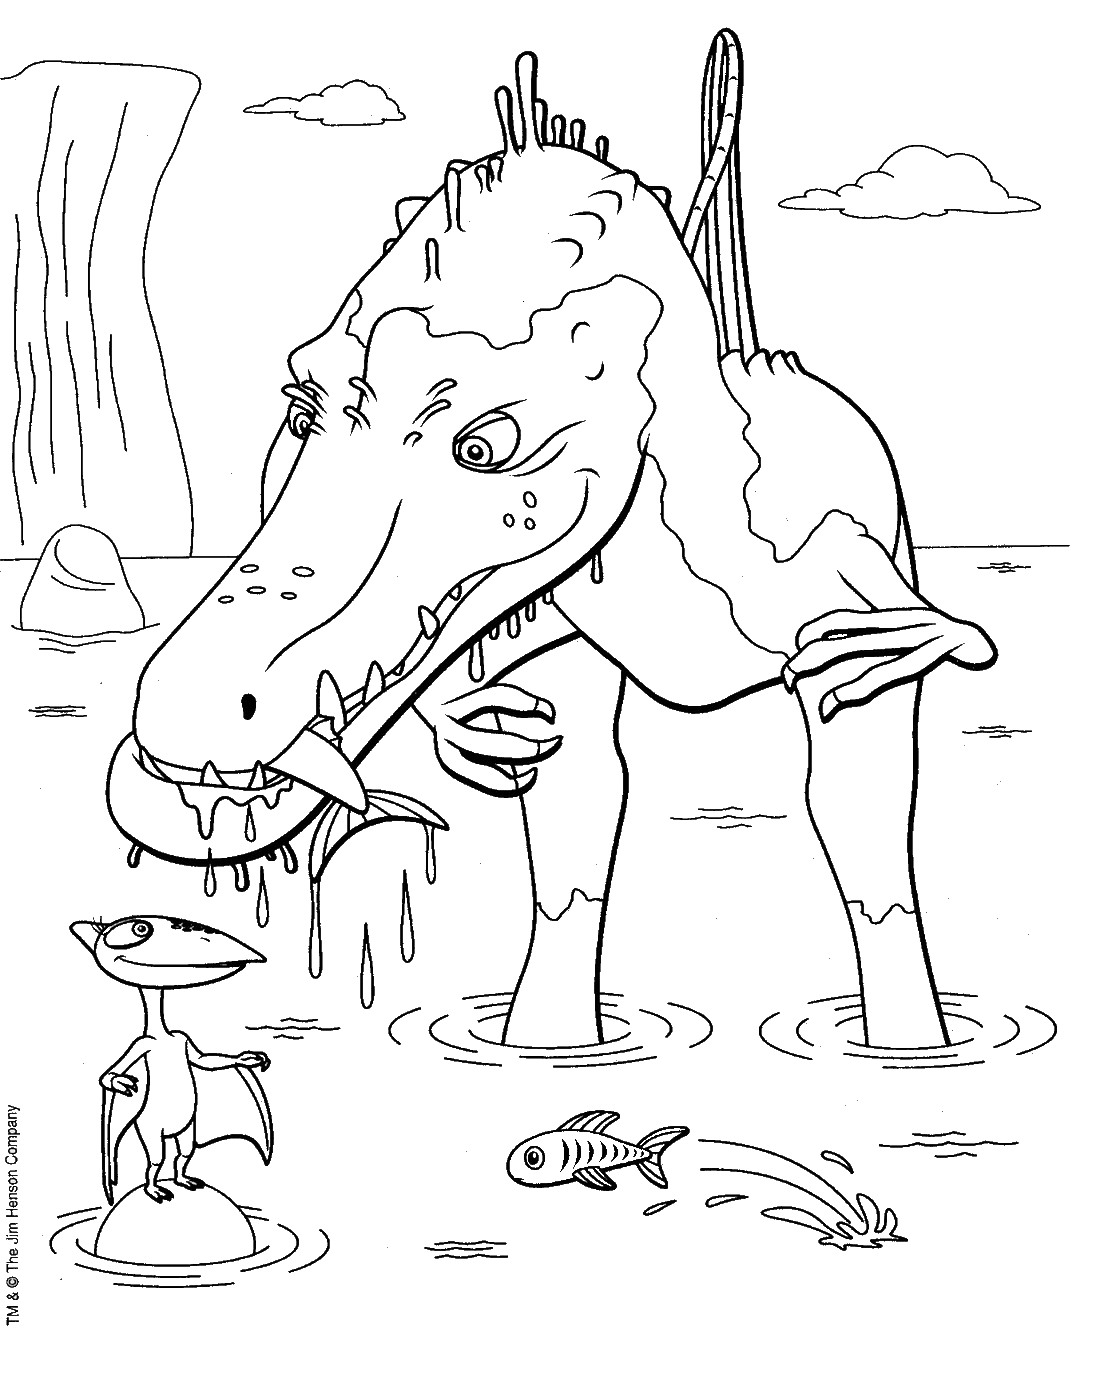 dinosaur print out coloring pages printable stegosaurus dinosaur coloring pages for kidsfree dinosaur print out coloring pages